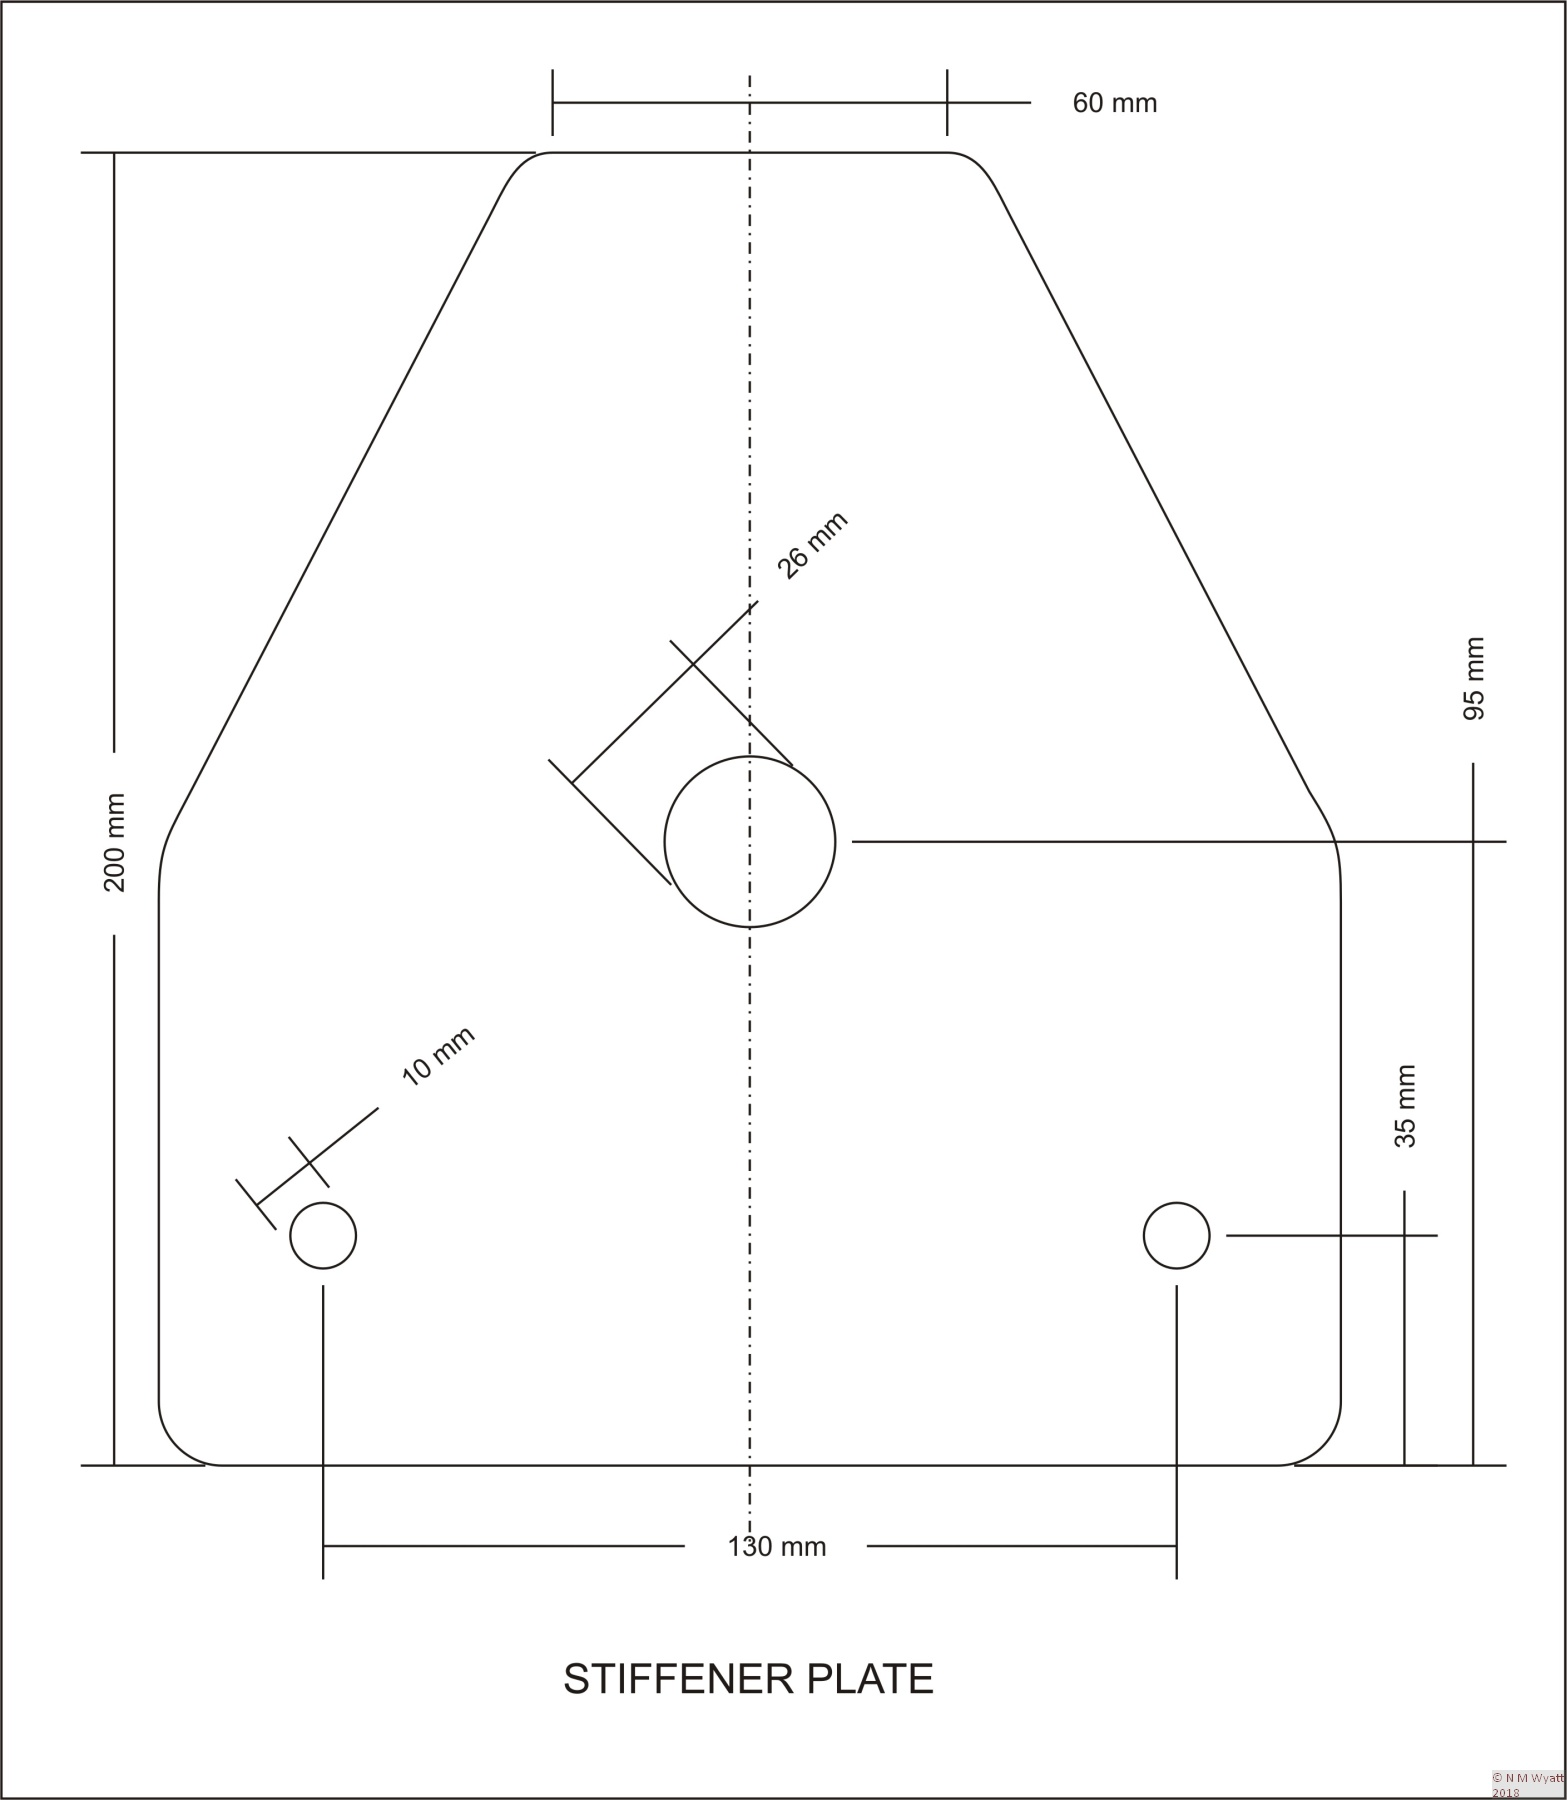 Dimensions for an X2 Mill Stiffening Plate